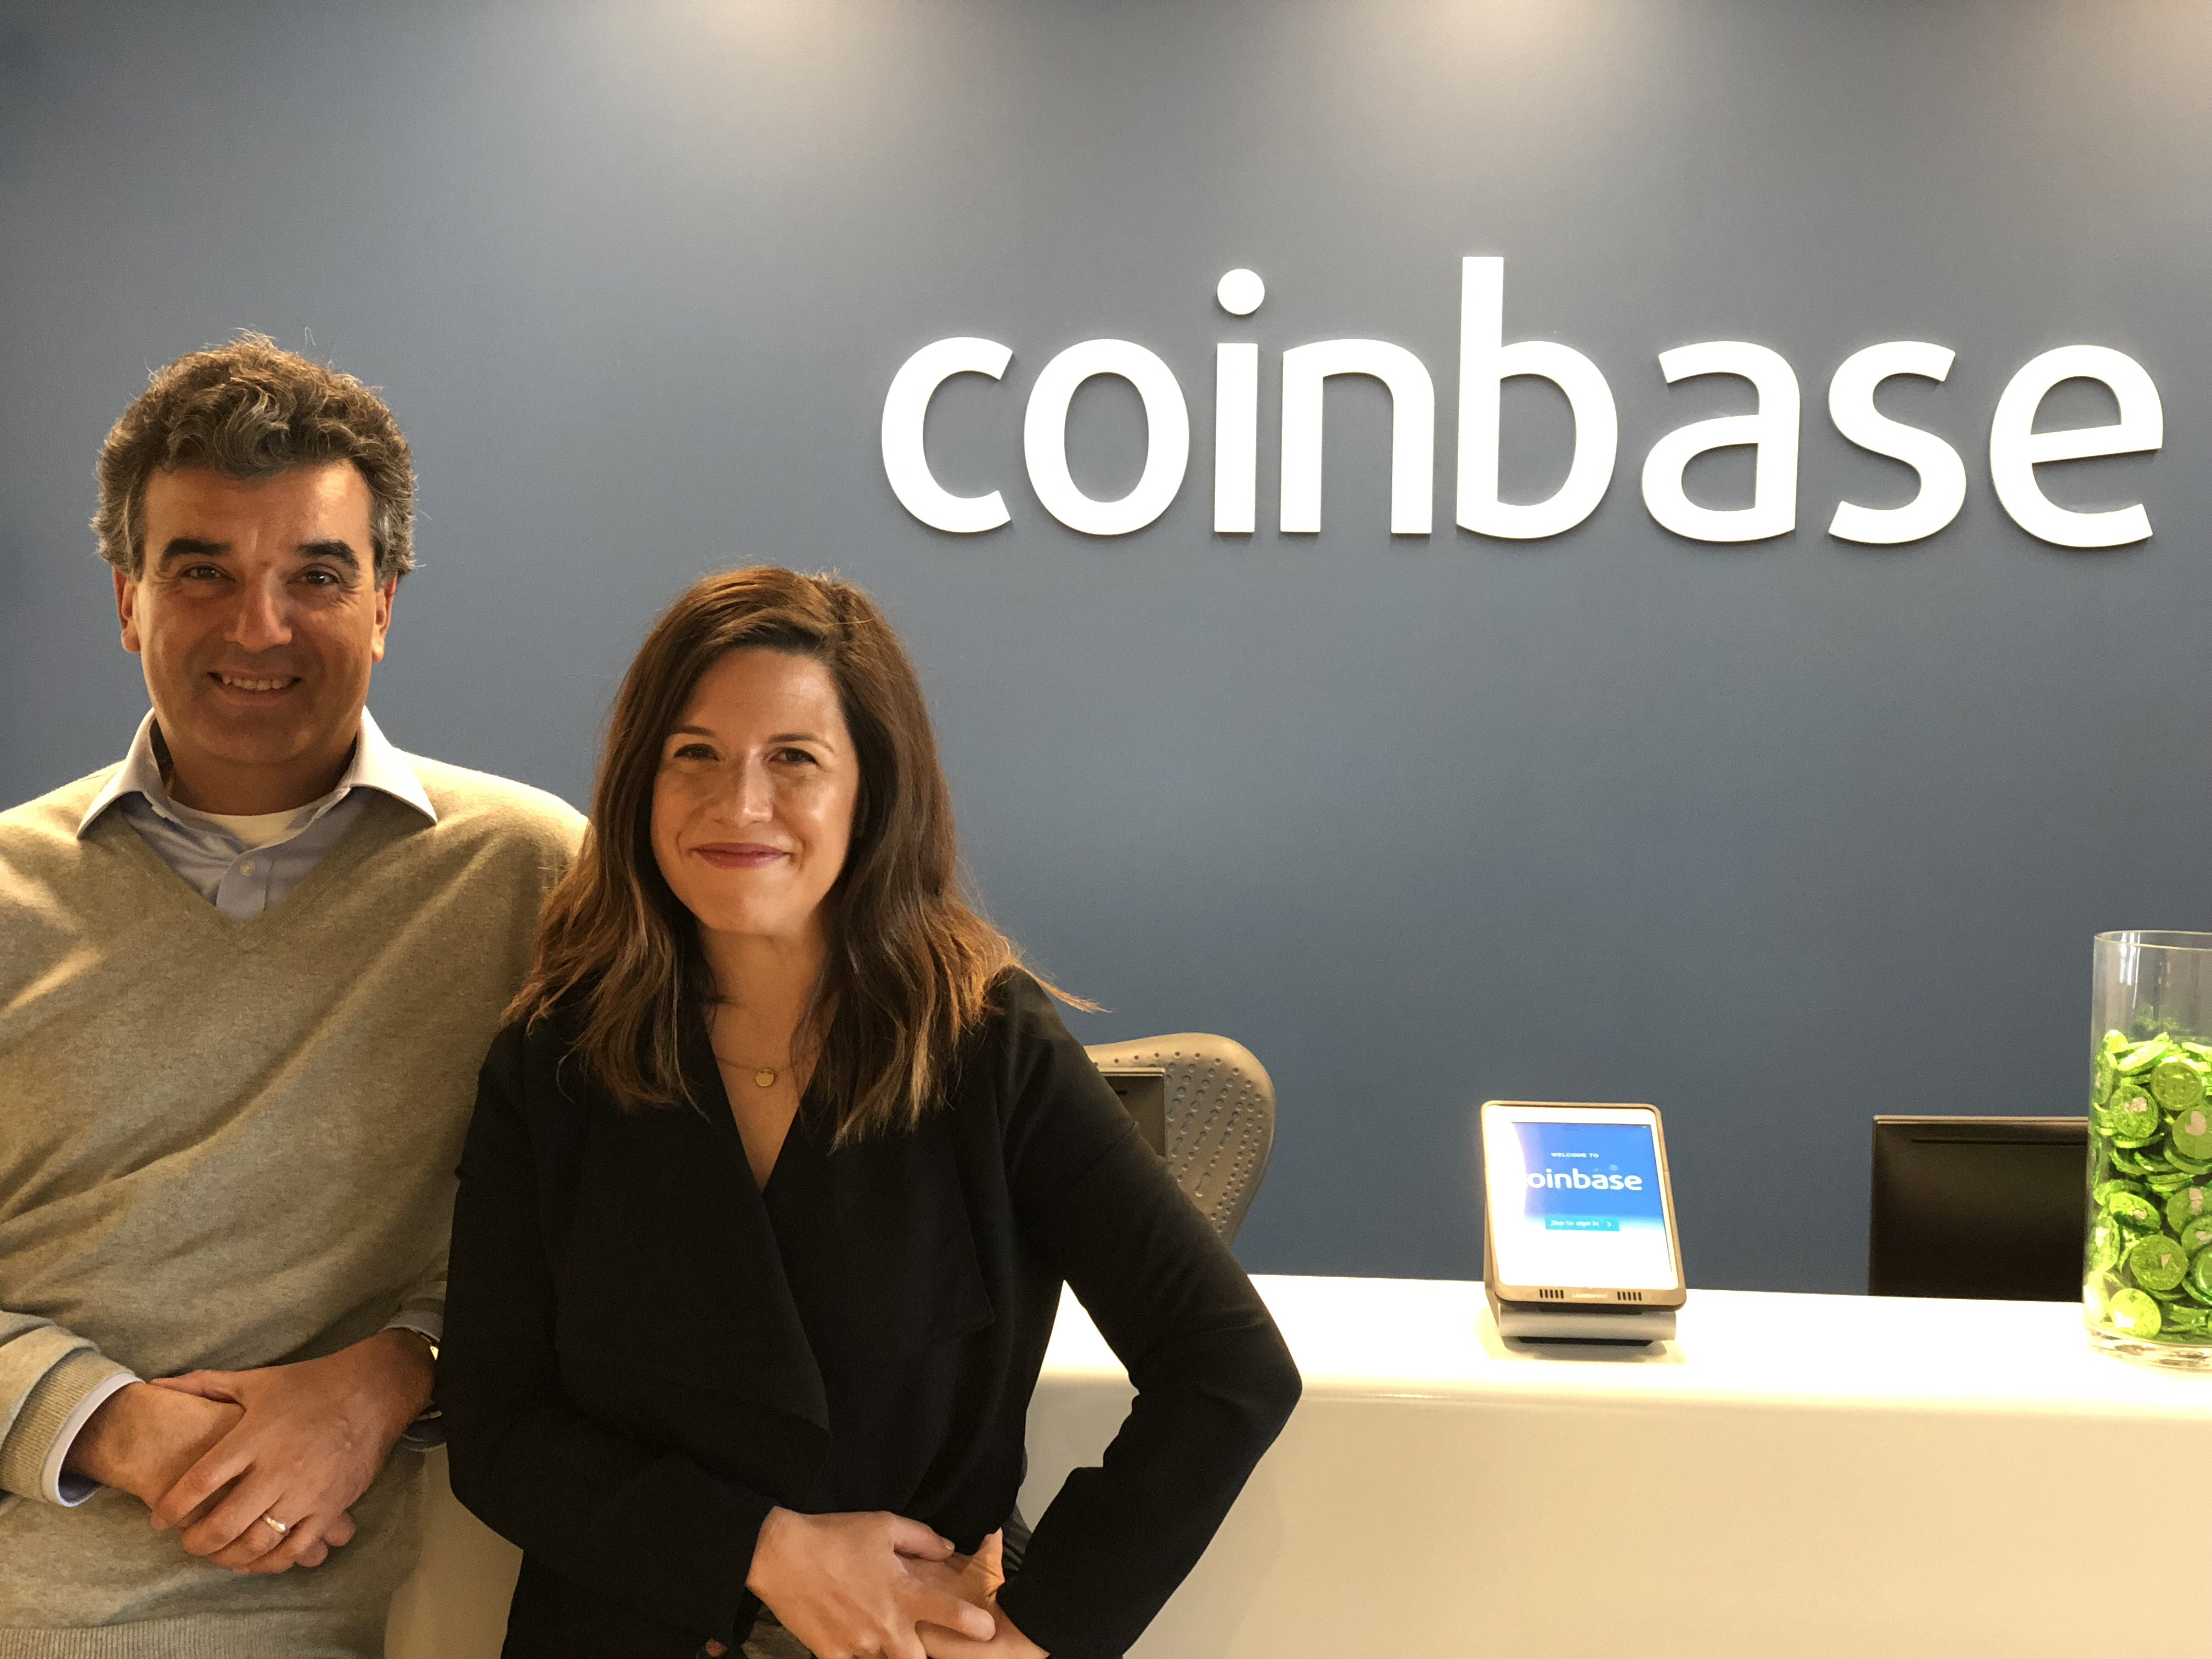 Coinbase COO Asiff Hirji (left) and VP of Communications Rachael Horwitz in front of the Coinbase reception desk